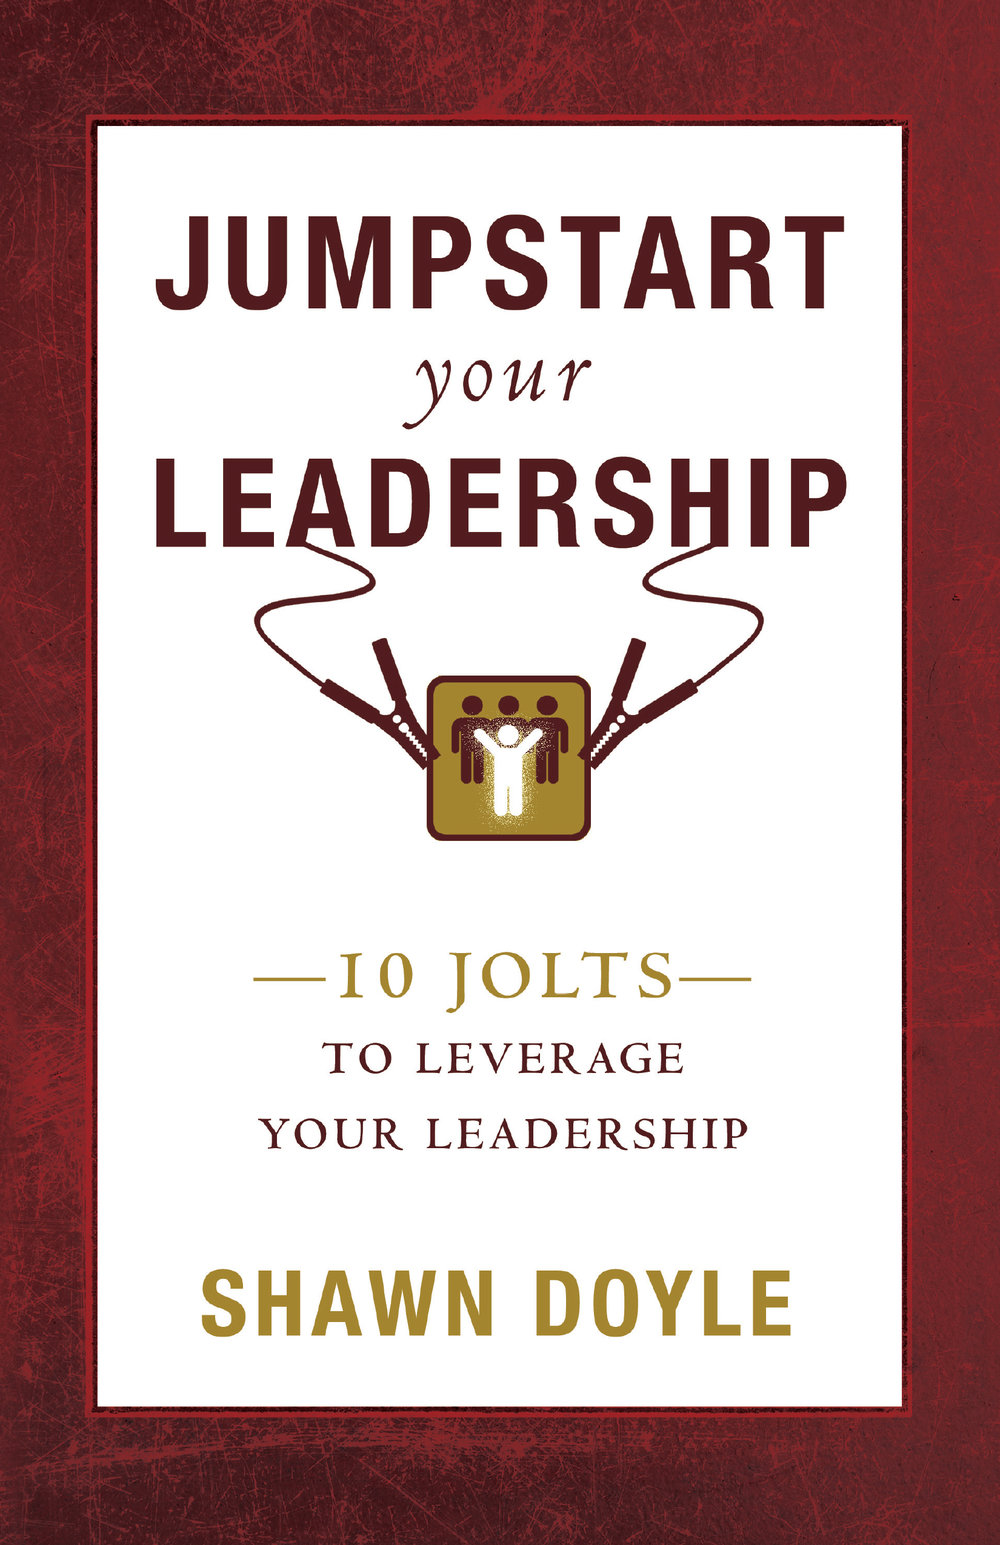 Jumpstart Your Leadership - Shawn Doyle CSP